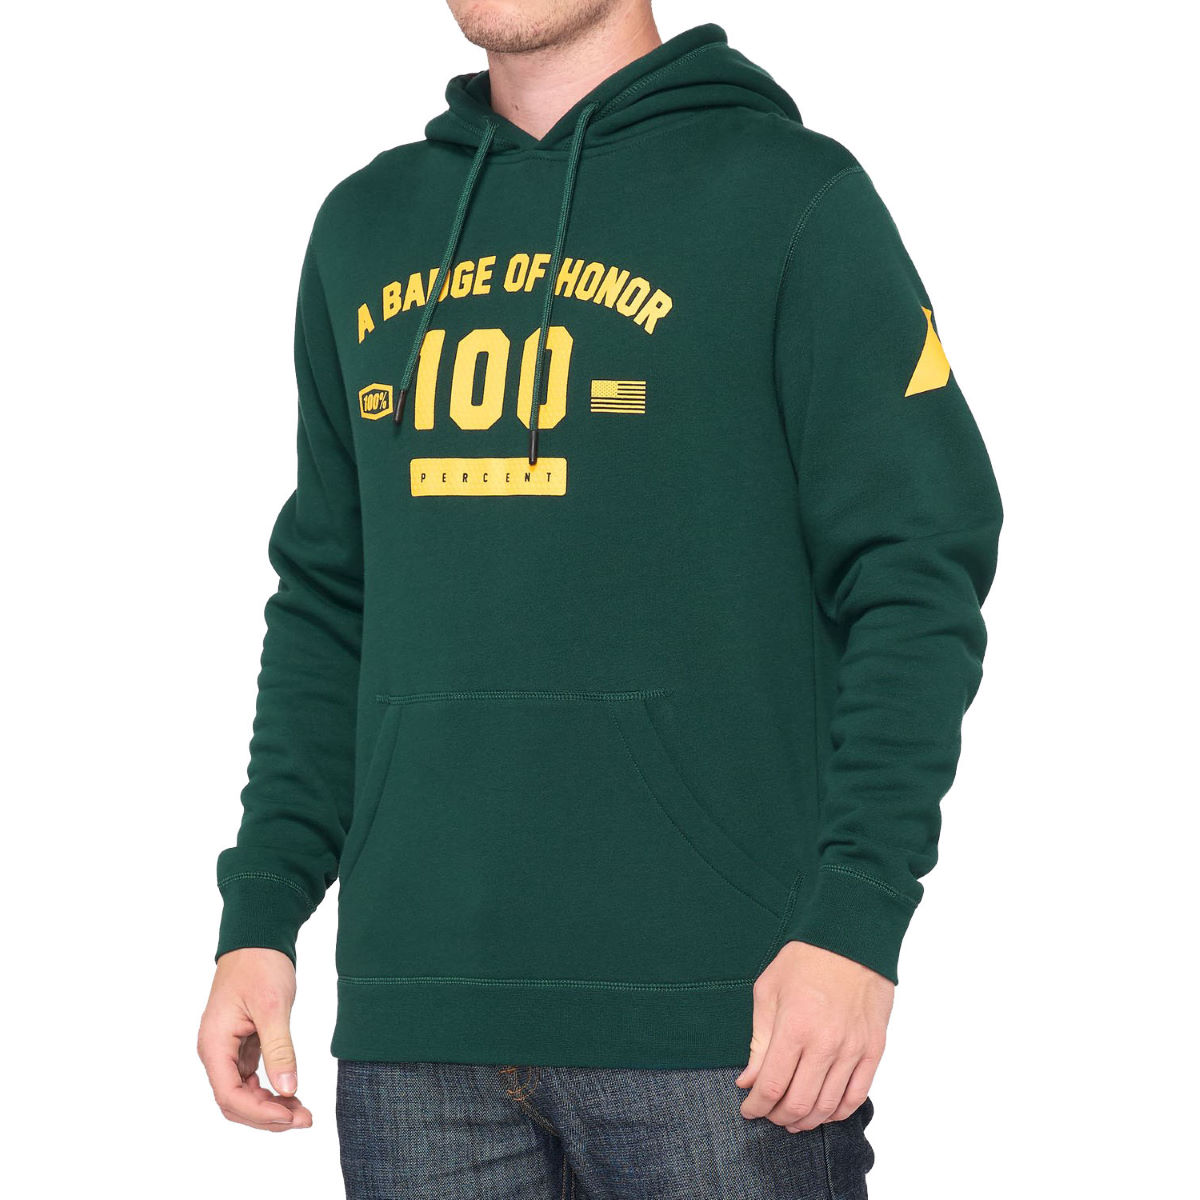 100% Tribute Hooded Pullover Sweatshirt - Extra Large Dark Green